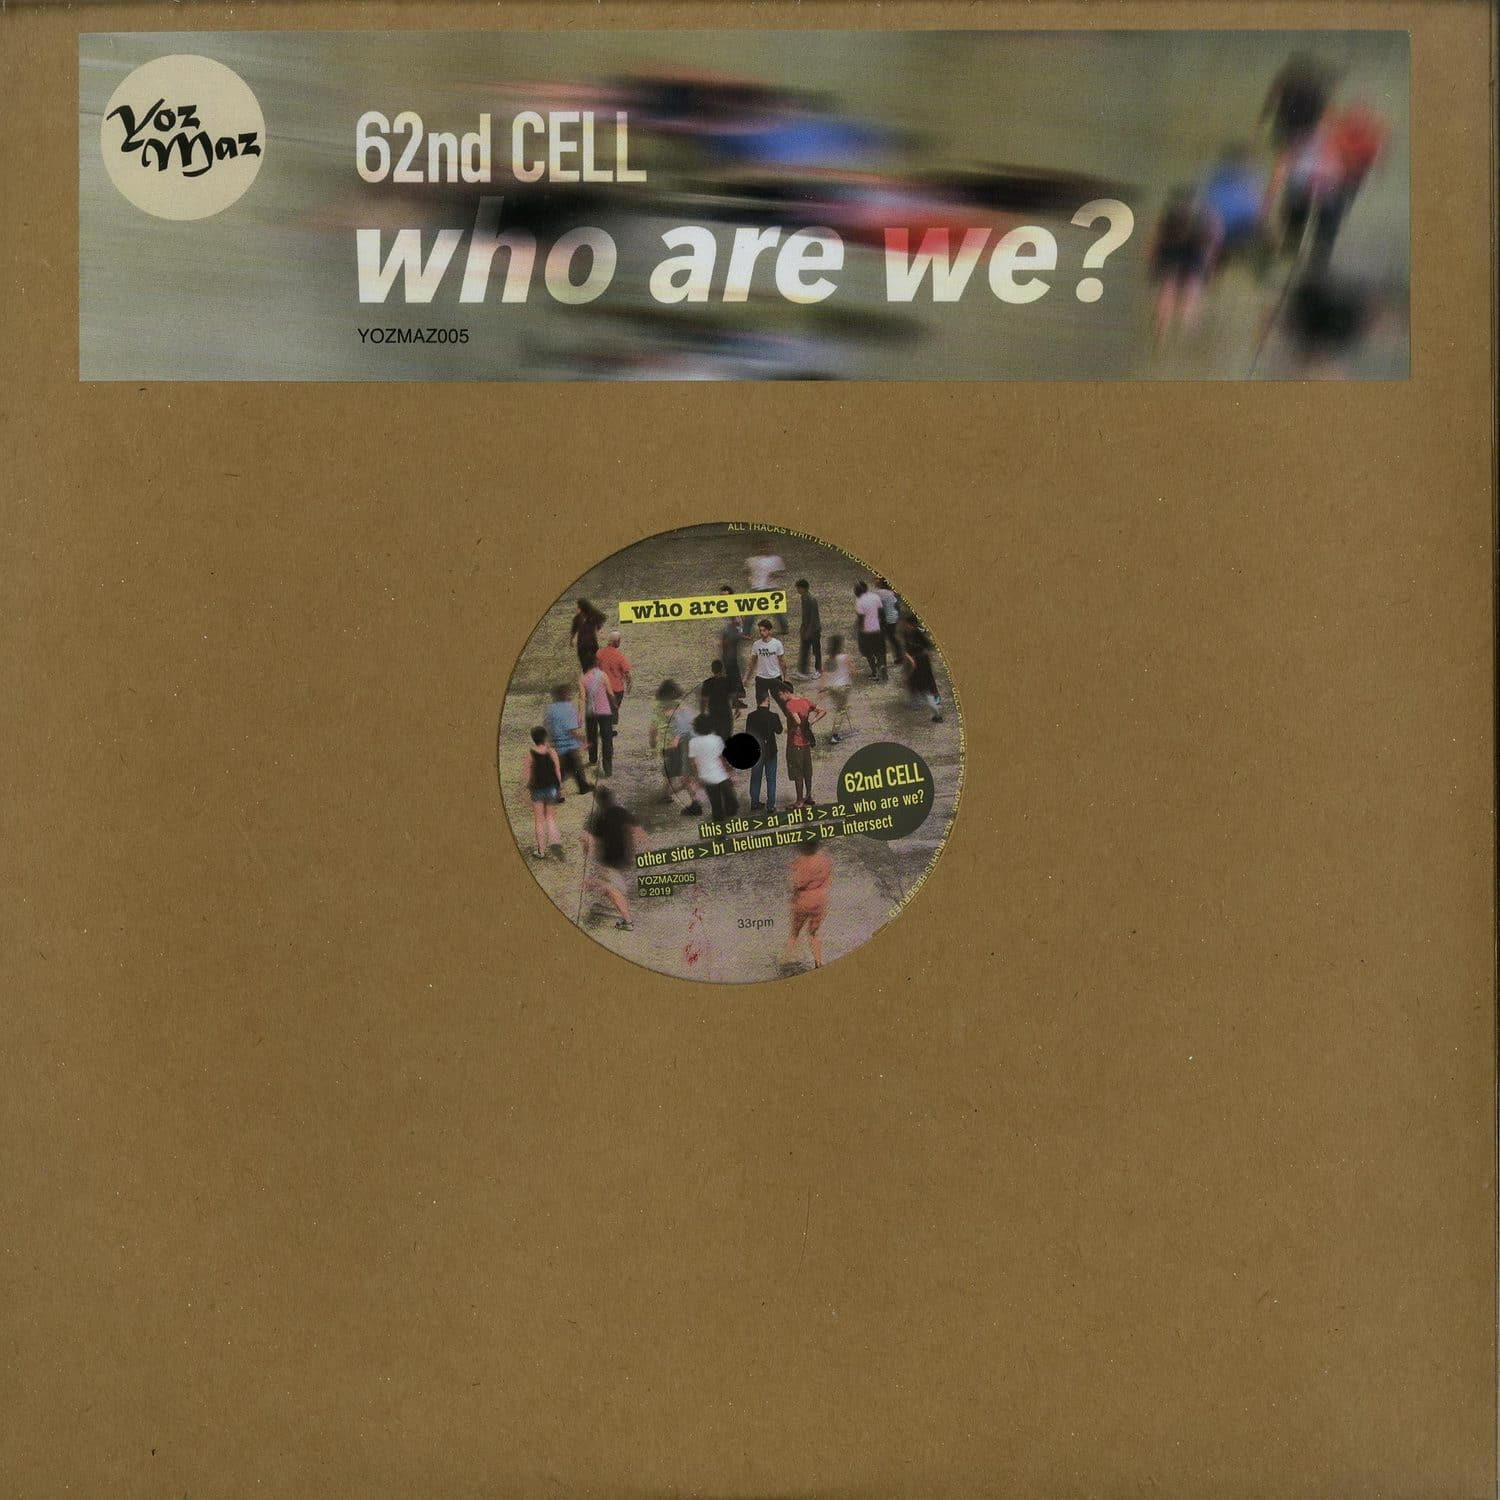 62nd Cell - WHO ARE WE